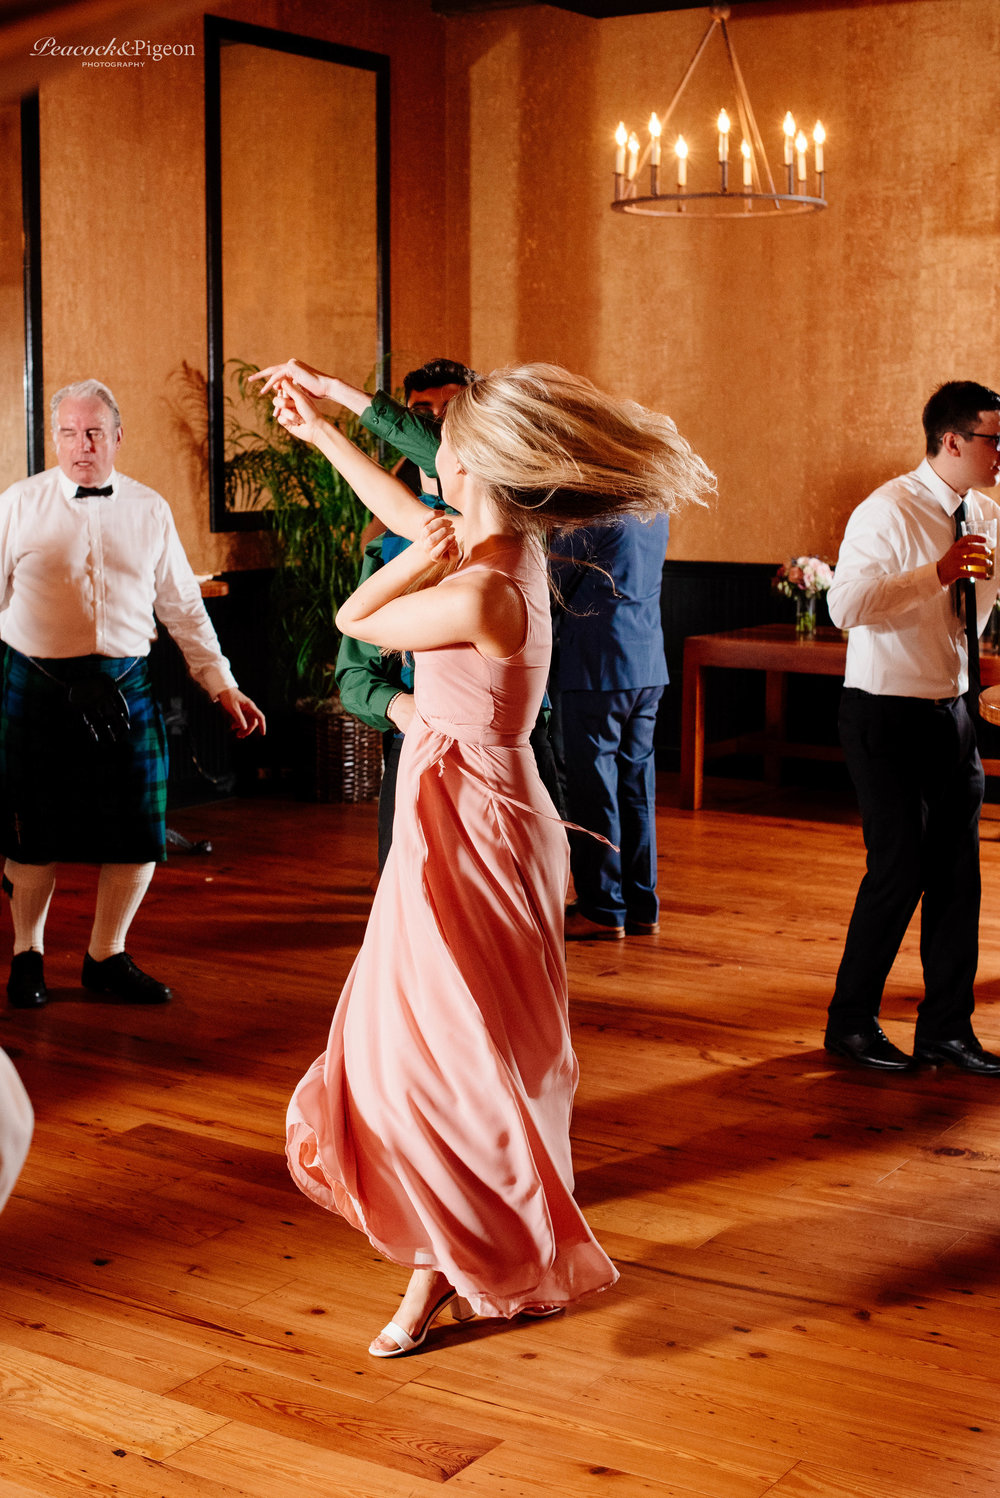 Callum_and_Sara's_Wedding_at_the_Cork_Factory_Hotel_in_Lancaster_Part_Eleven_Dancing_Continued_Watermarked-5.jpg